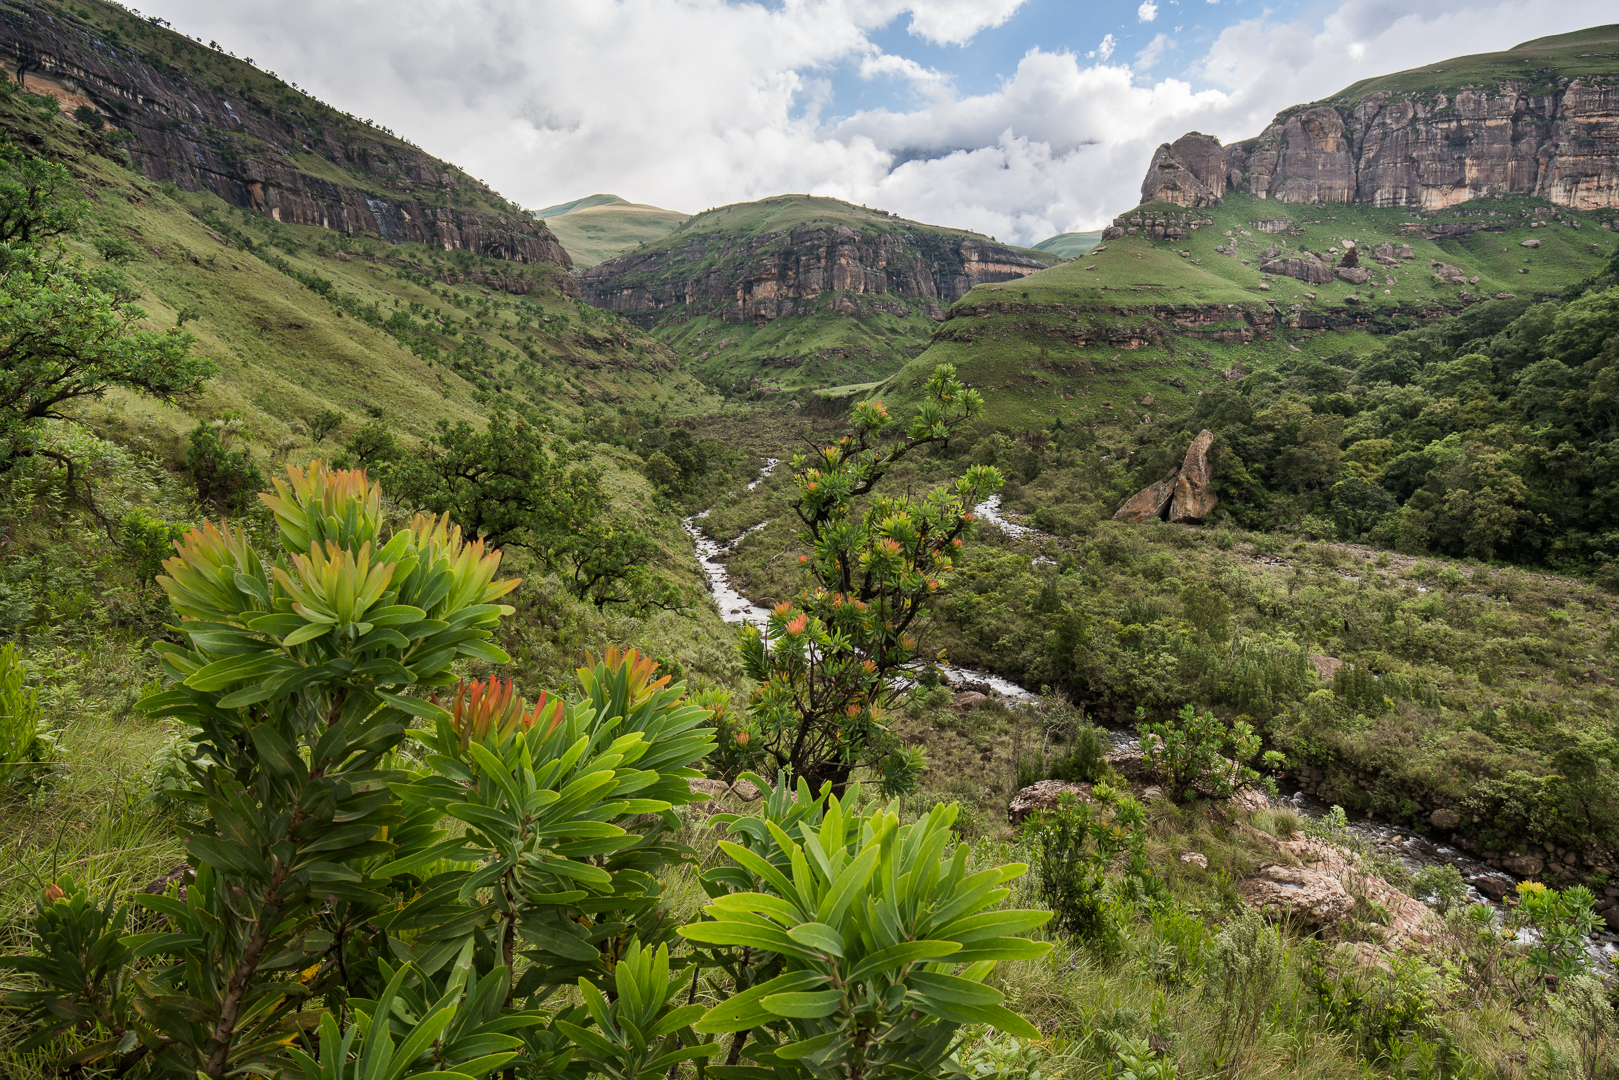 Protea trees line the valleys and there are numerous stands of untouched woodland